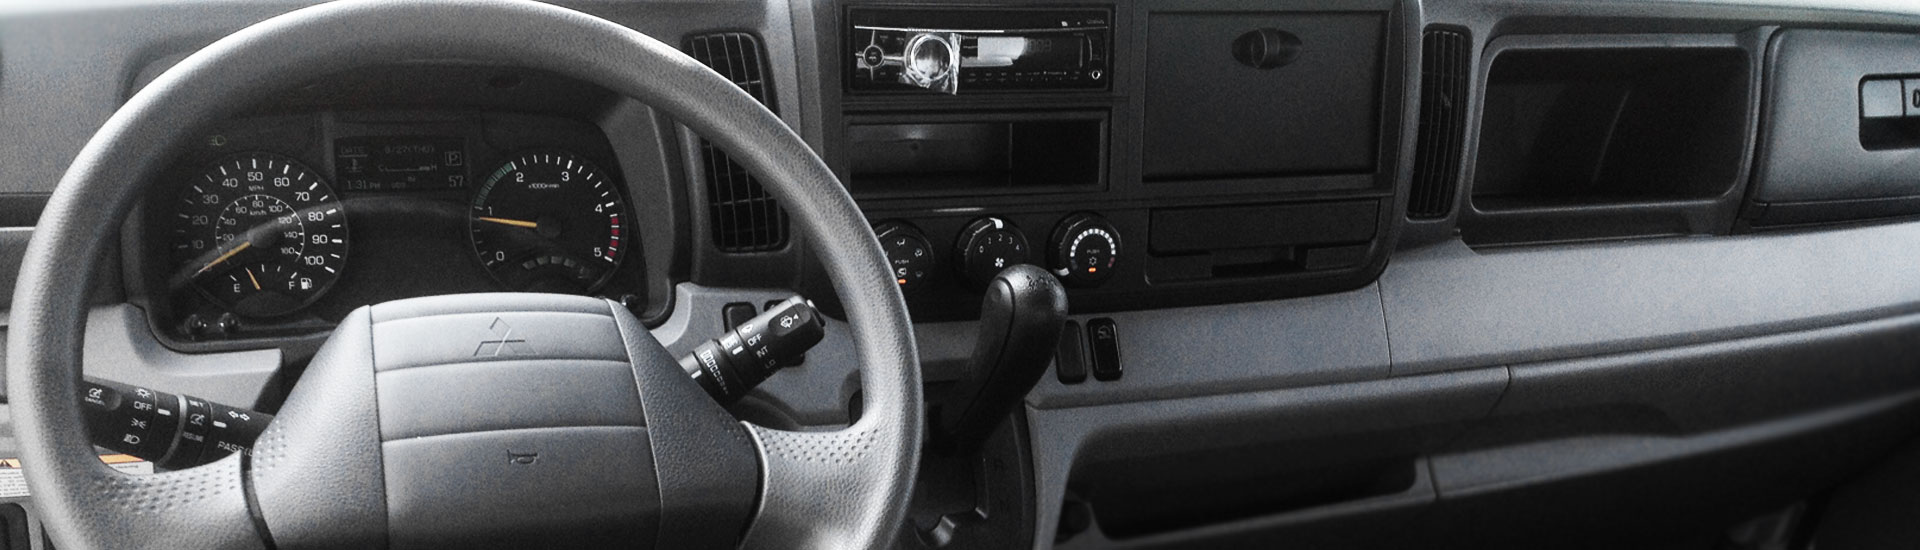 Mitsubishi Vanwagon Custom Dash Kits